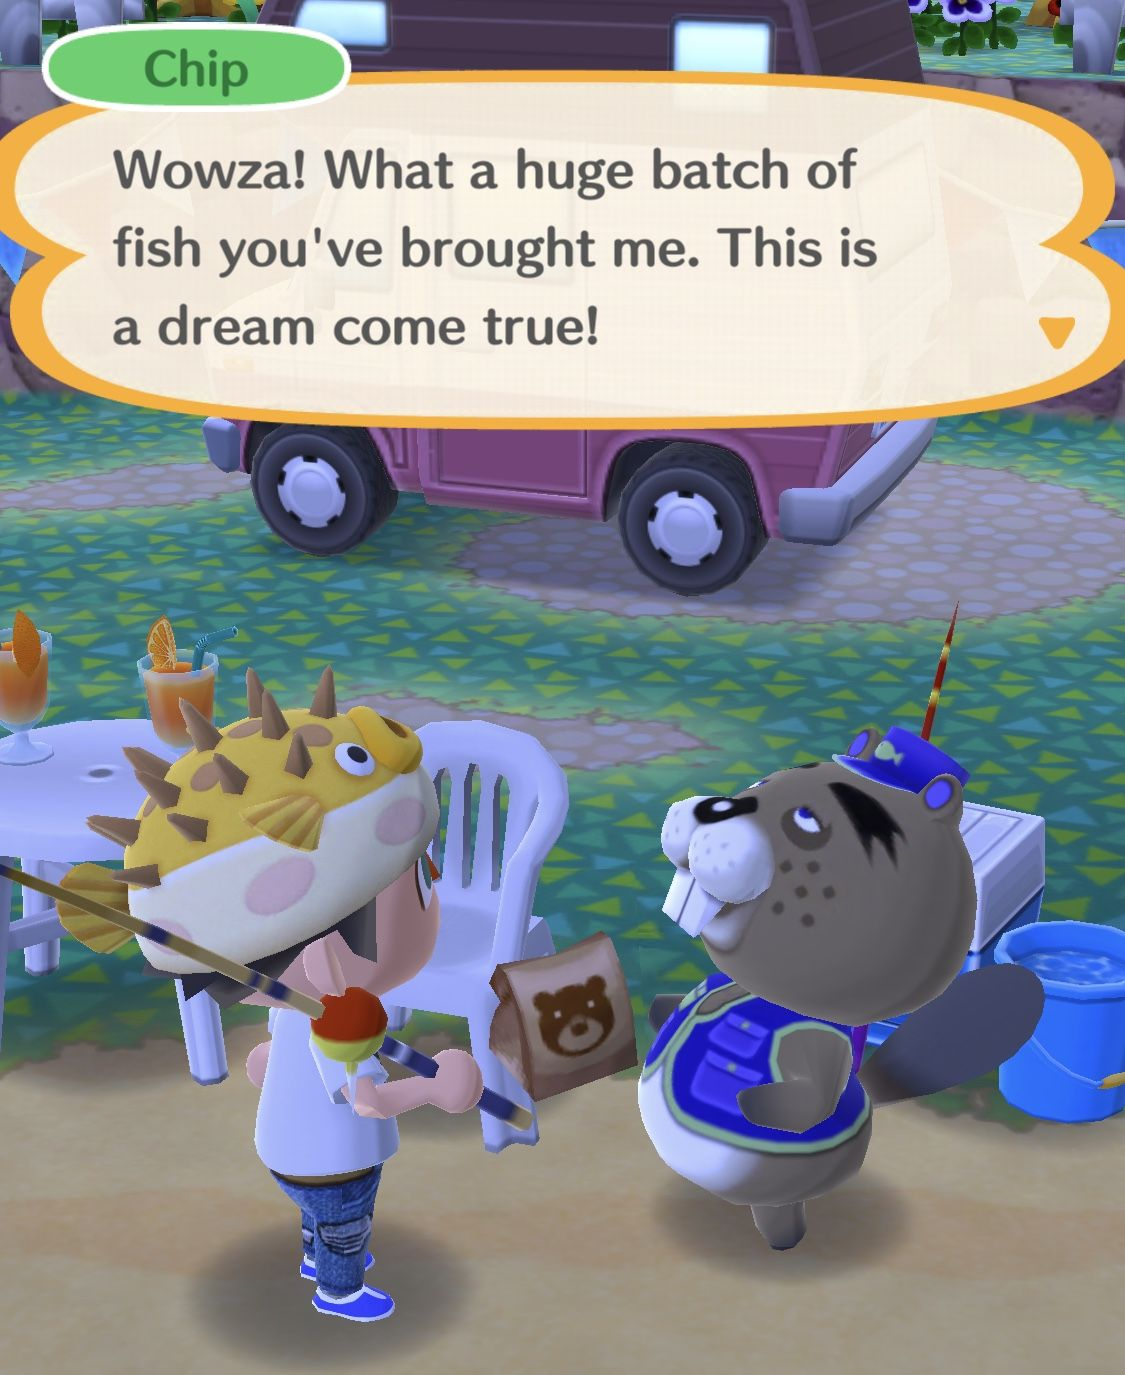 14+ Fishing tourney animal crossing ideas in 2021